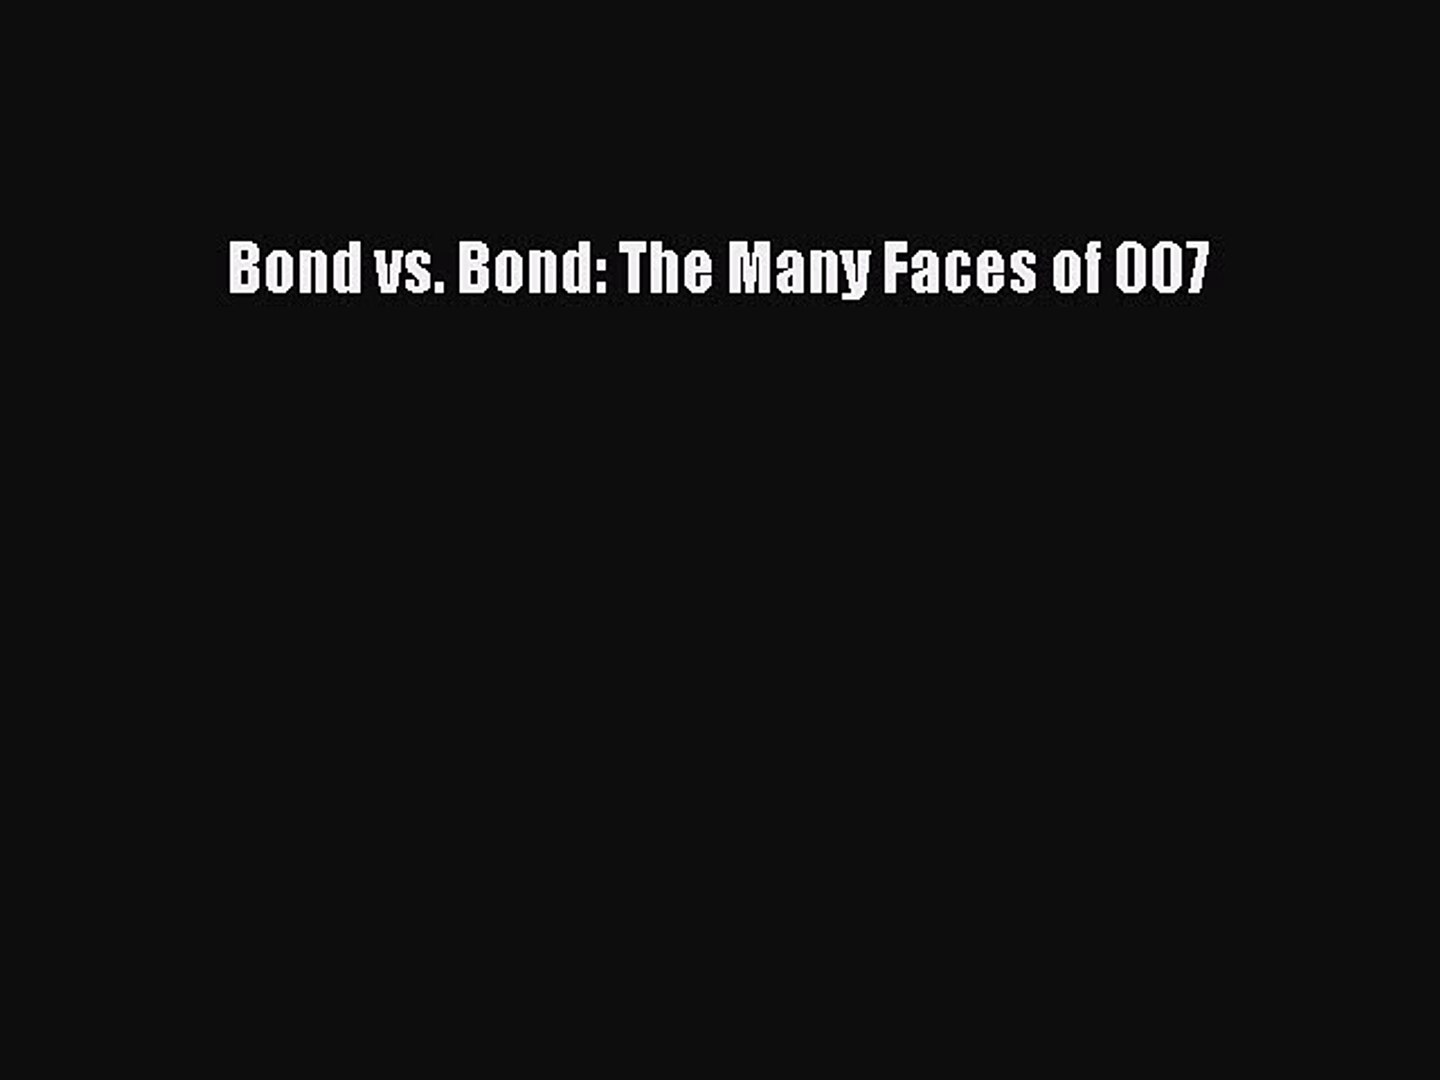 Download Bond vs. Bond: The Many Faces of 007 Ebook Free